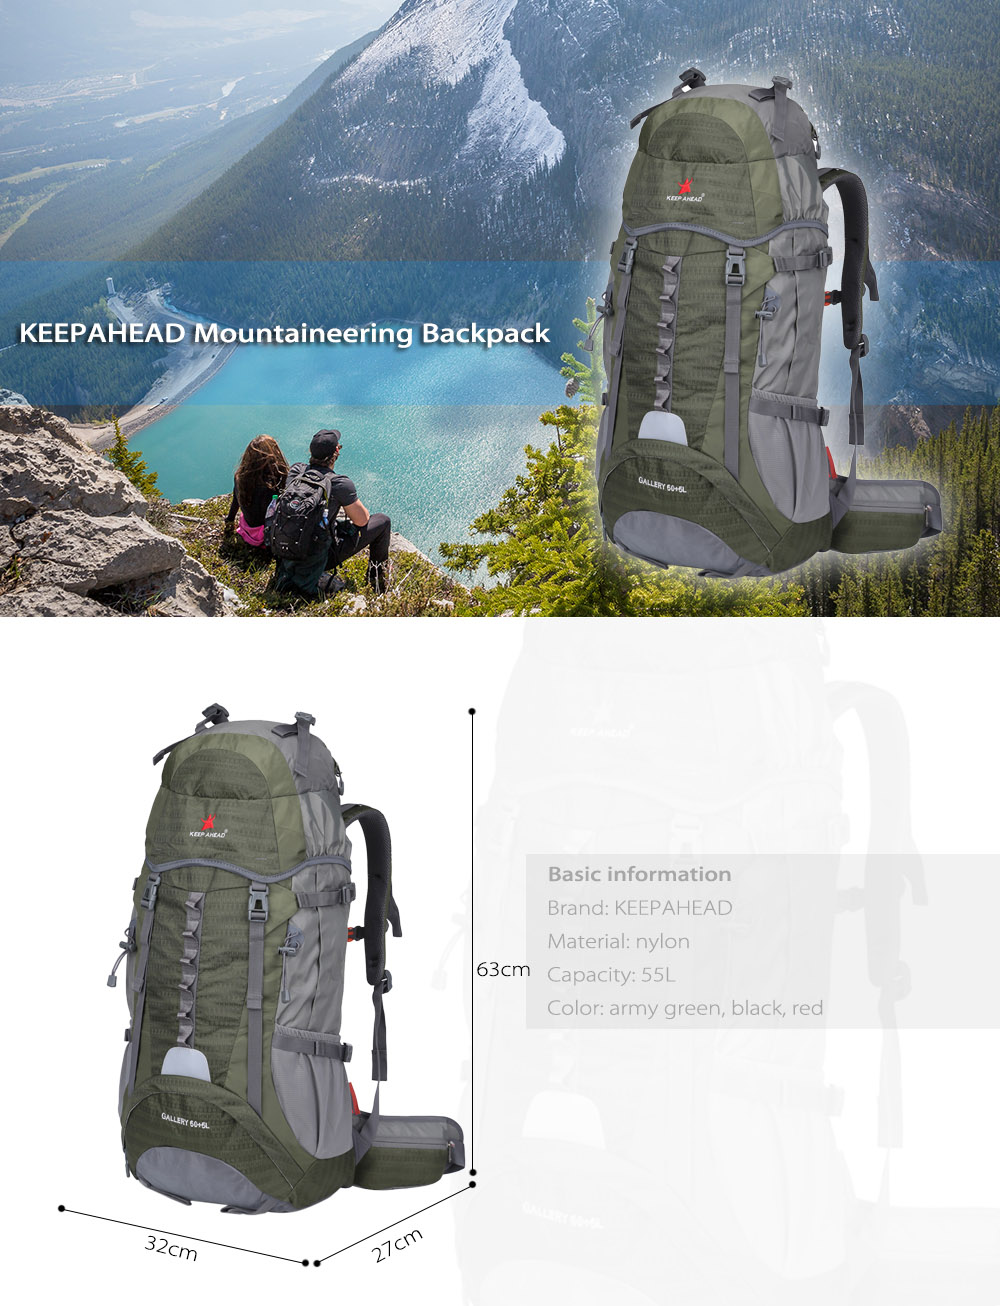 KEEPAHEAD 15080 Breathable Nylon 55L Mountaineering Backpack Bag with Fixed Belt